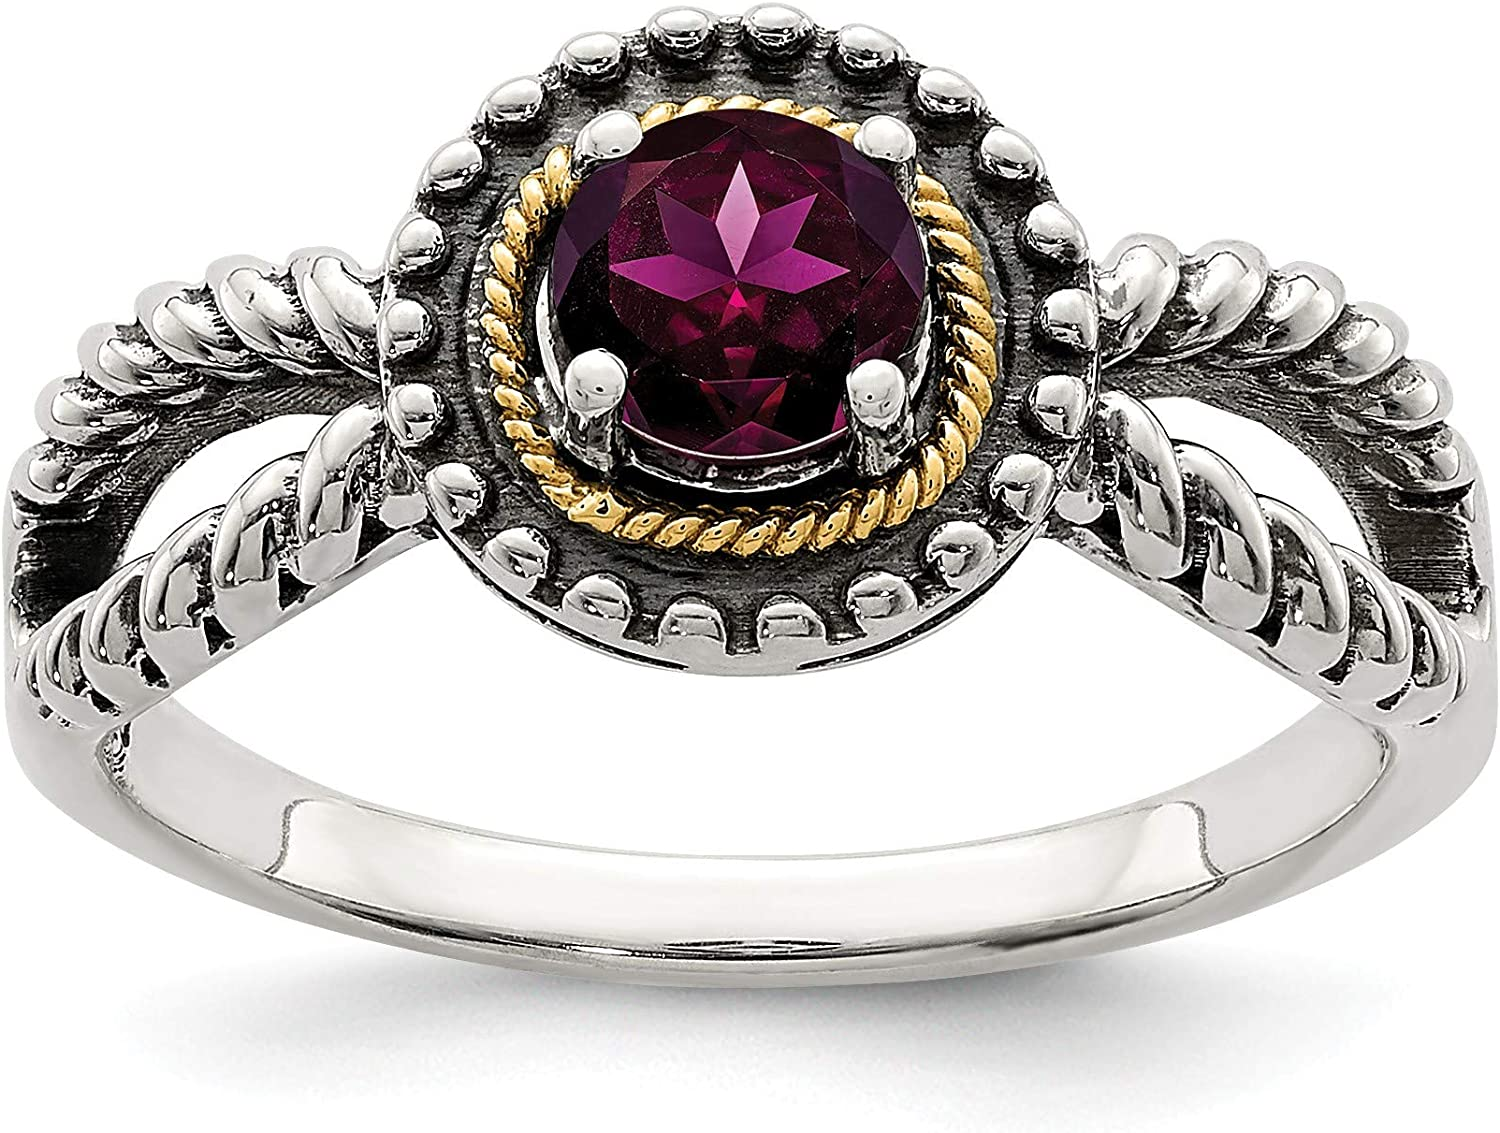 Sterling Silver 40% OFF Cheap Sale w 14K Accent Rhodolite Garnet Size: Ring Ranking TOP19 14 8